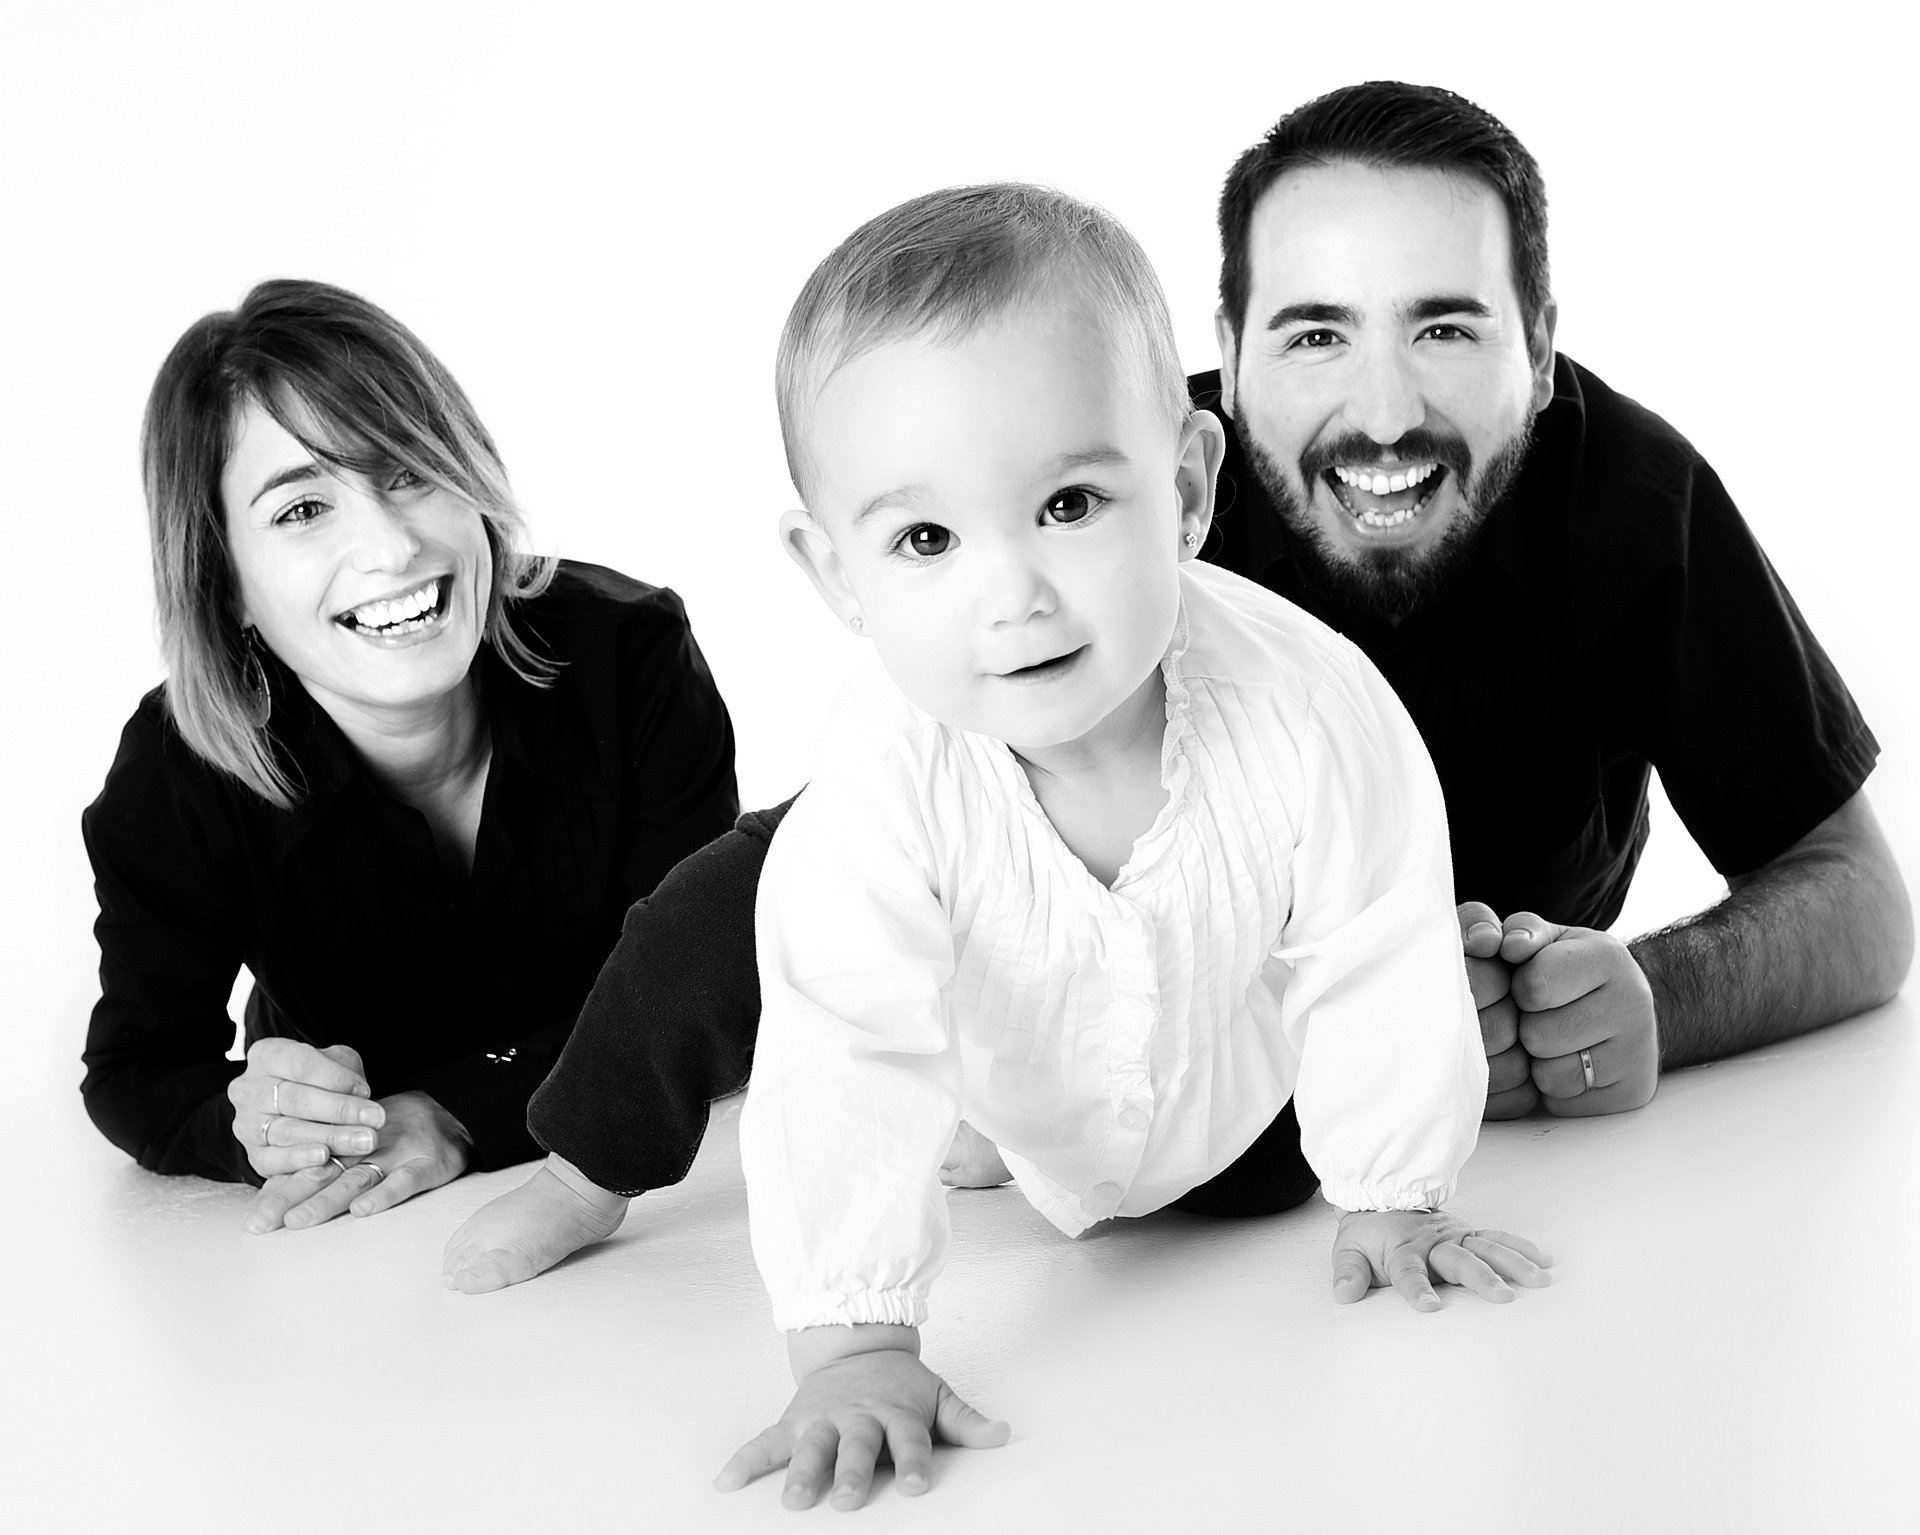 familia y salud dental